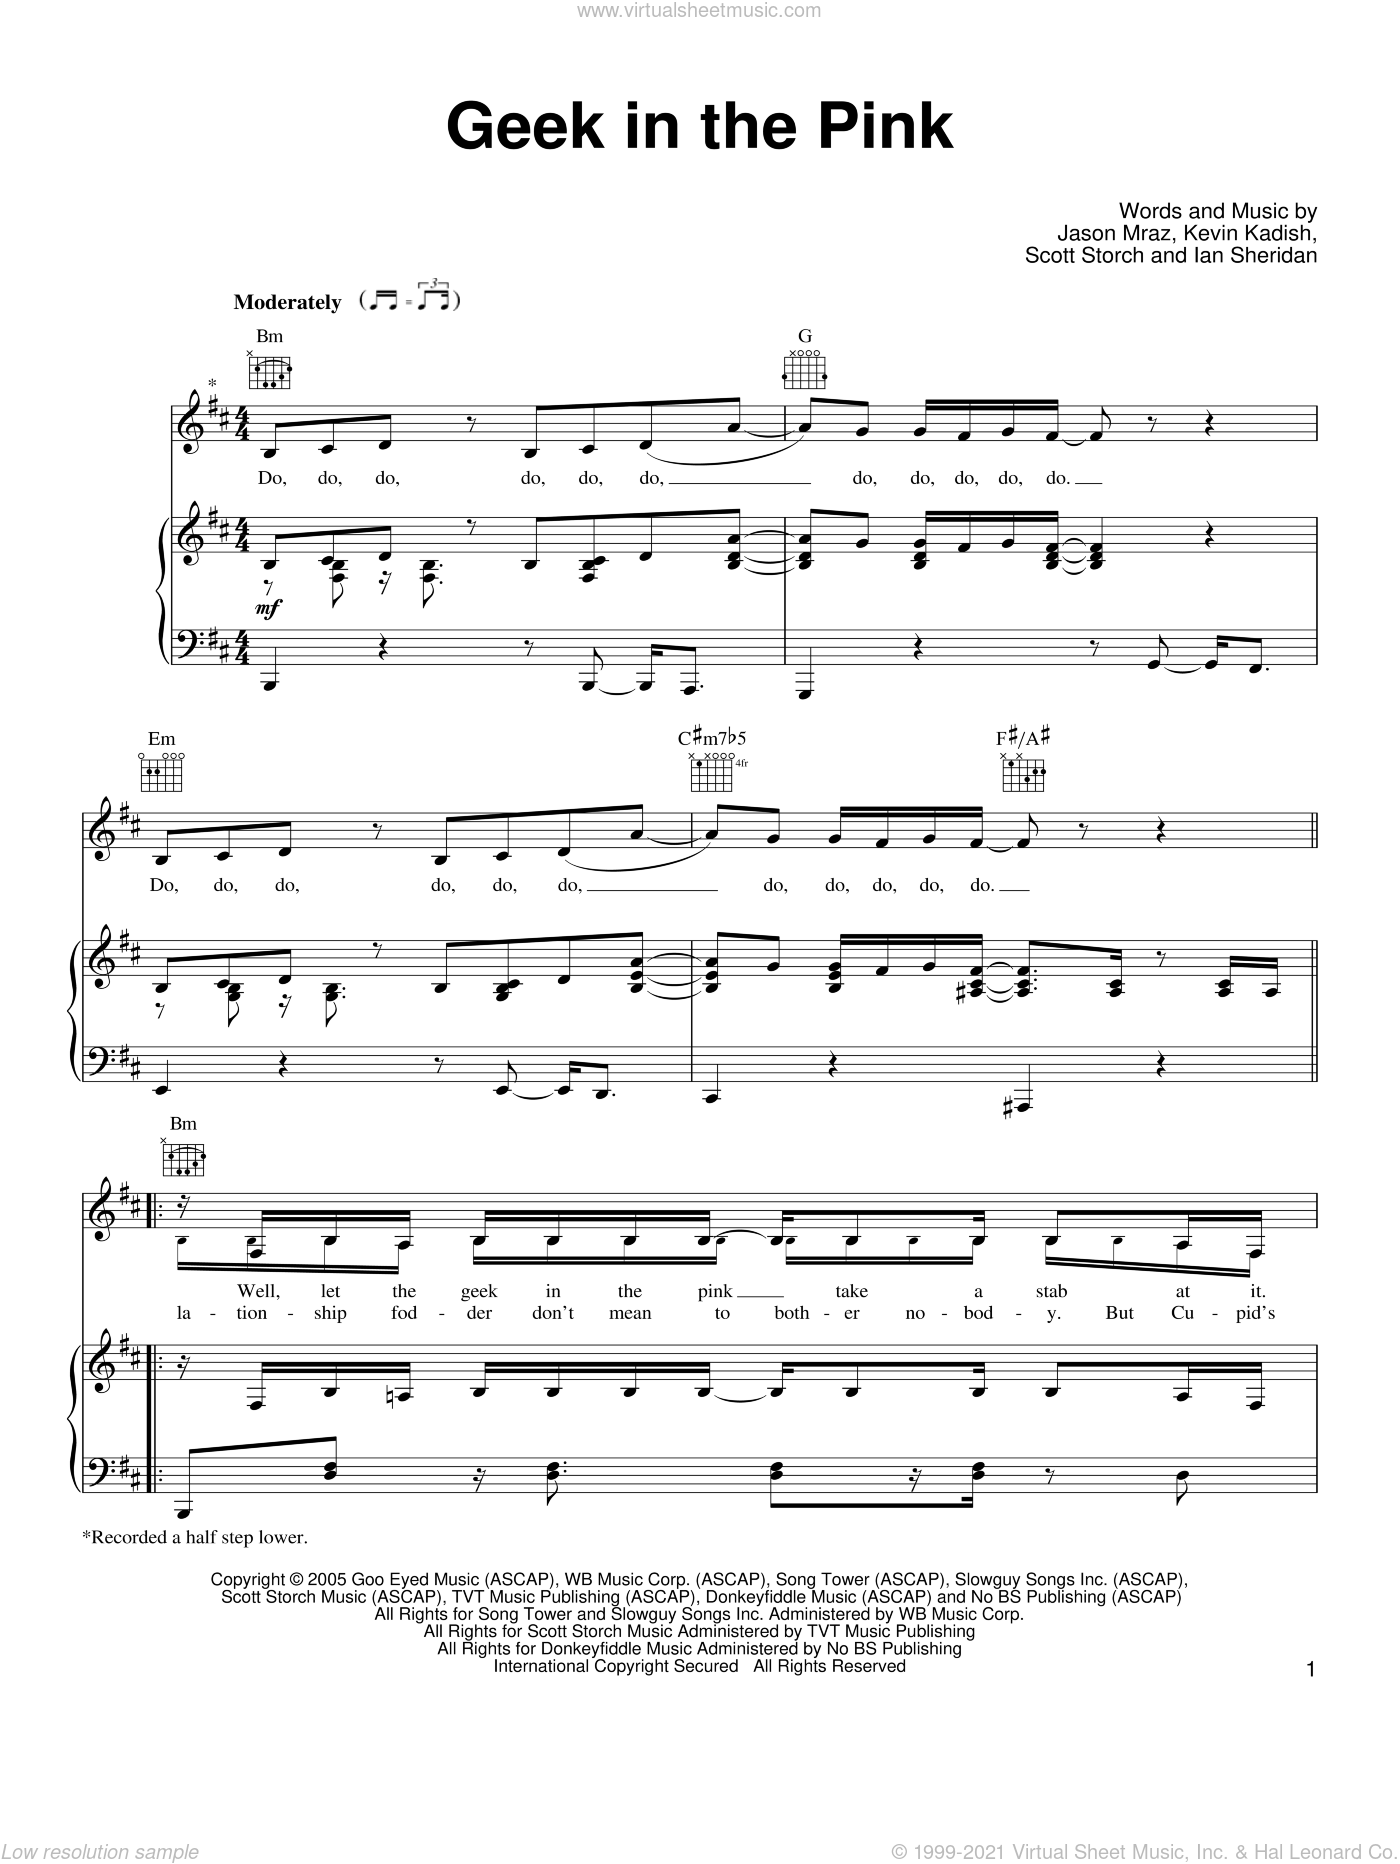 Geek In The Pink sheet music for voice, piano or guitar by Jason Mraz, Kevin Kadish and Scott Storch, intermediate voice, piano or guitar. Score Image Preview.